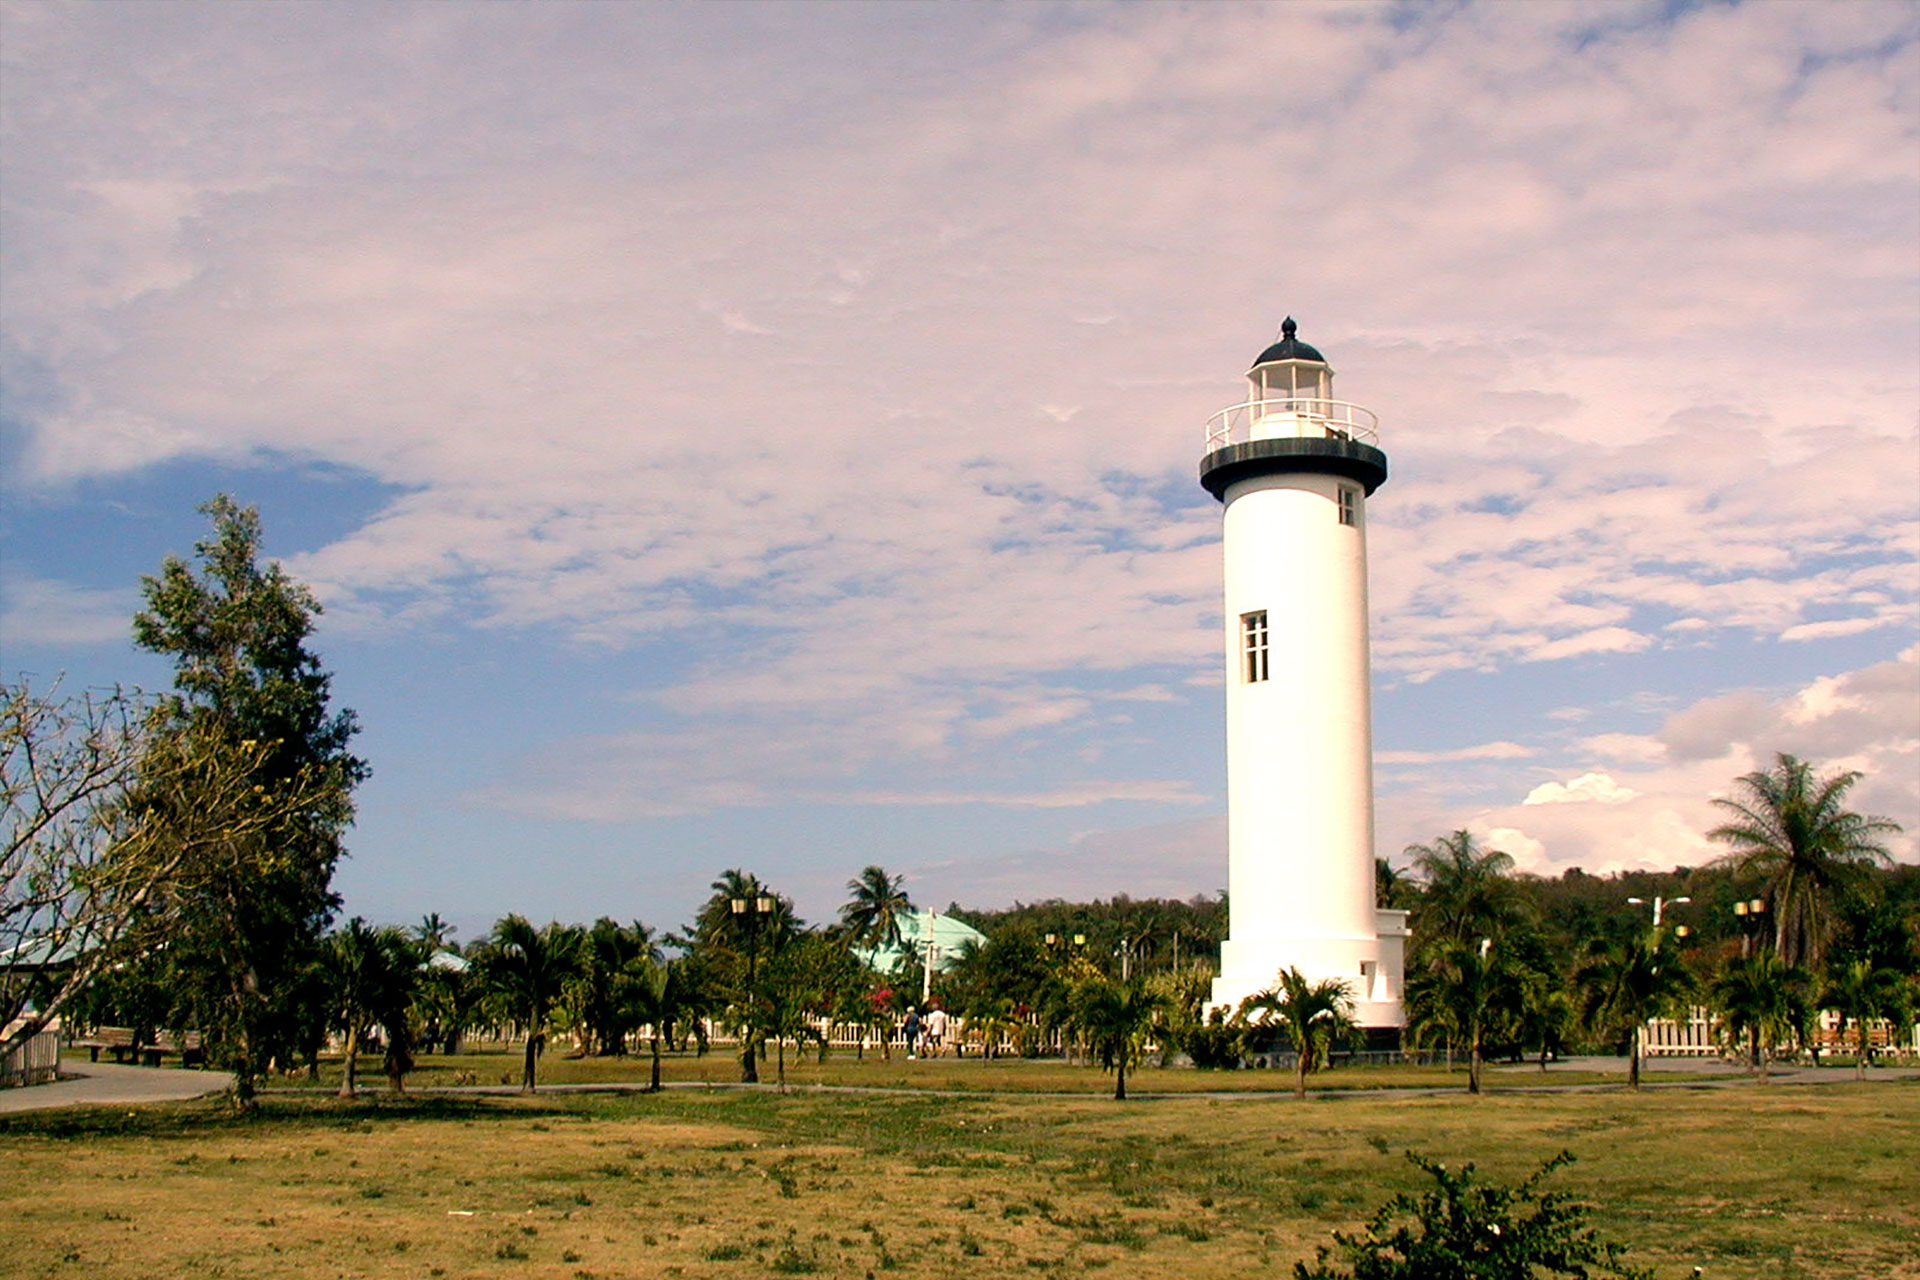 Lighthouse in Rincon